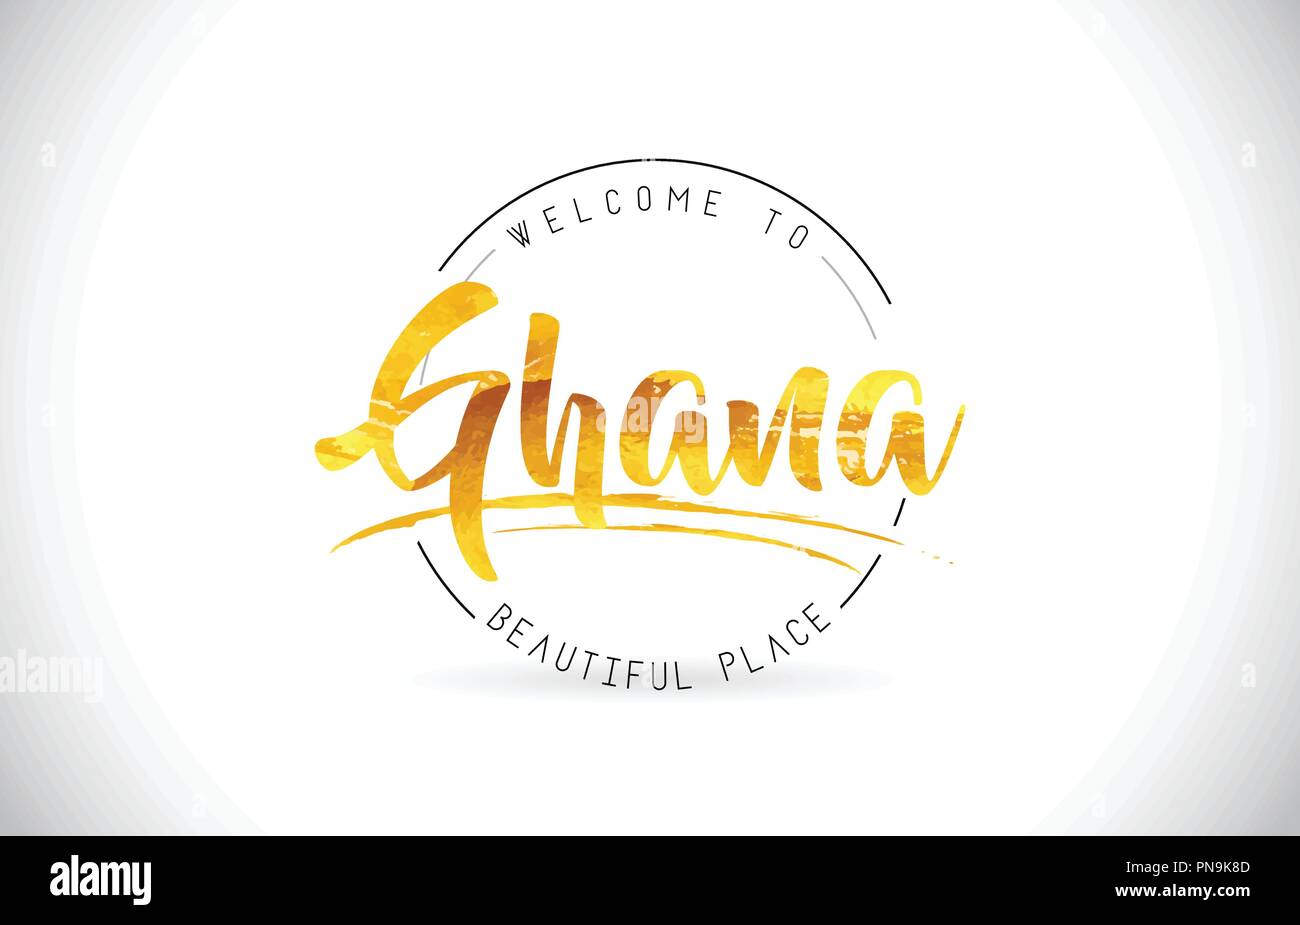 Ghana Welcome To Word Text with Handwritten Font and Golden Texture Design Illustration Vector. - Stock Vector